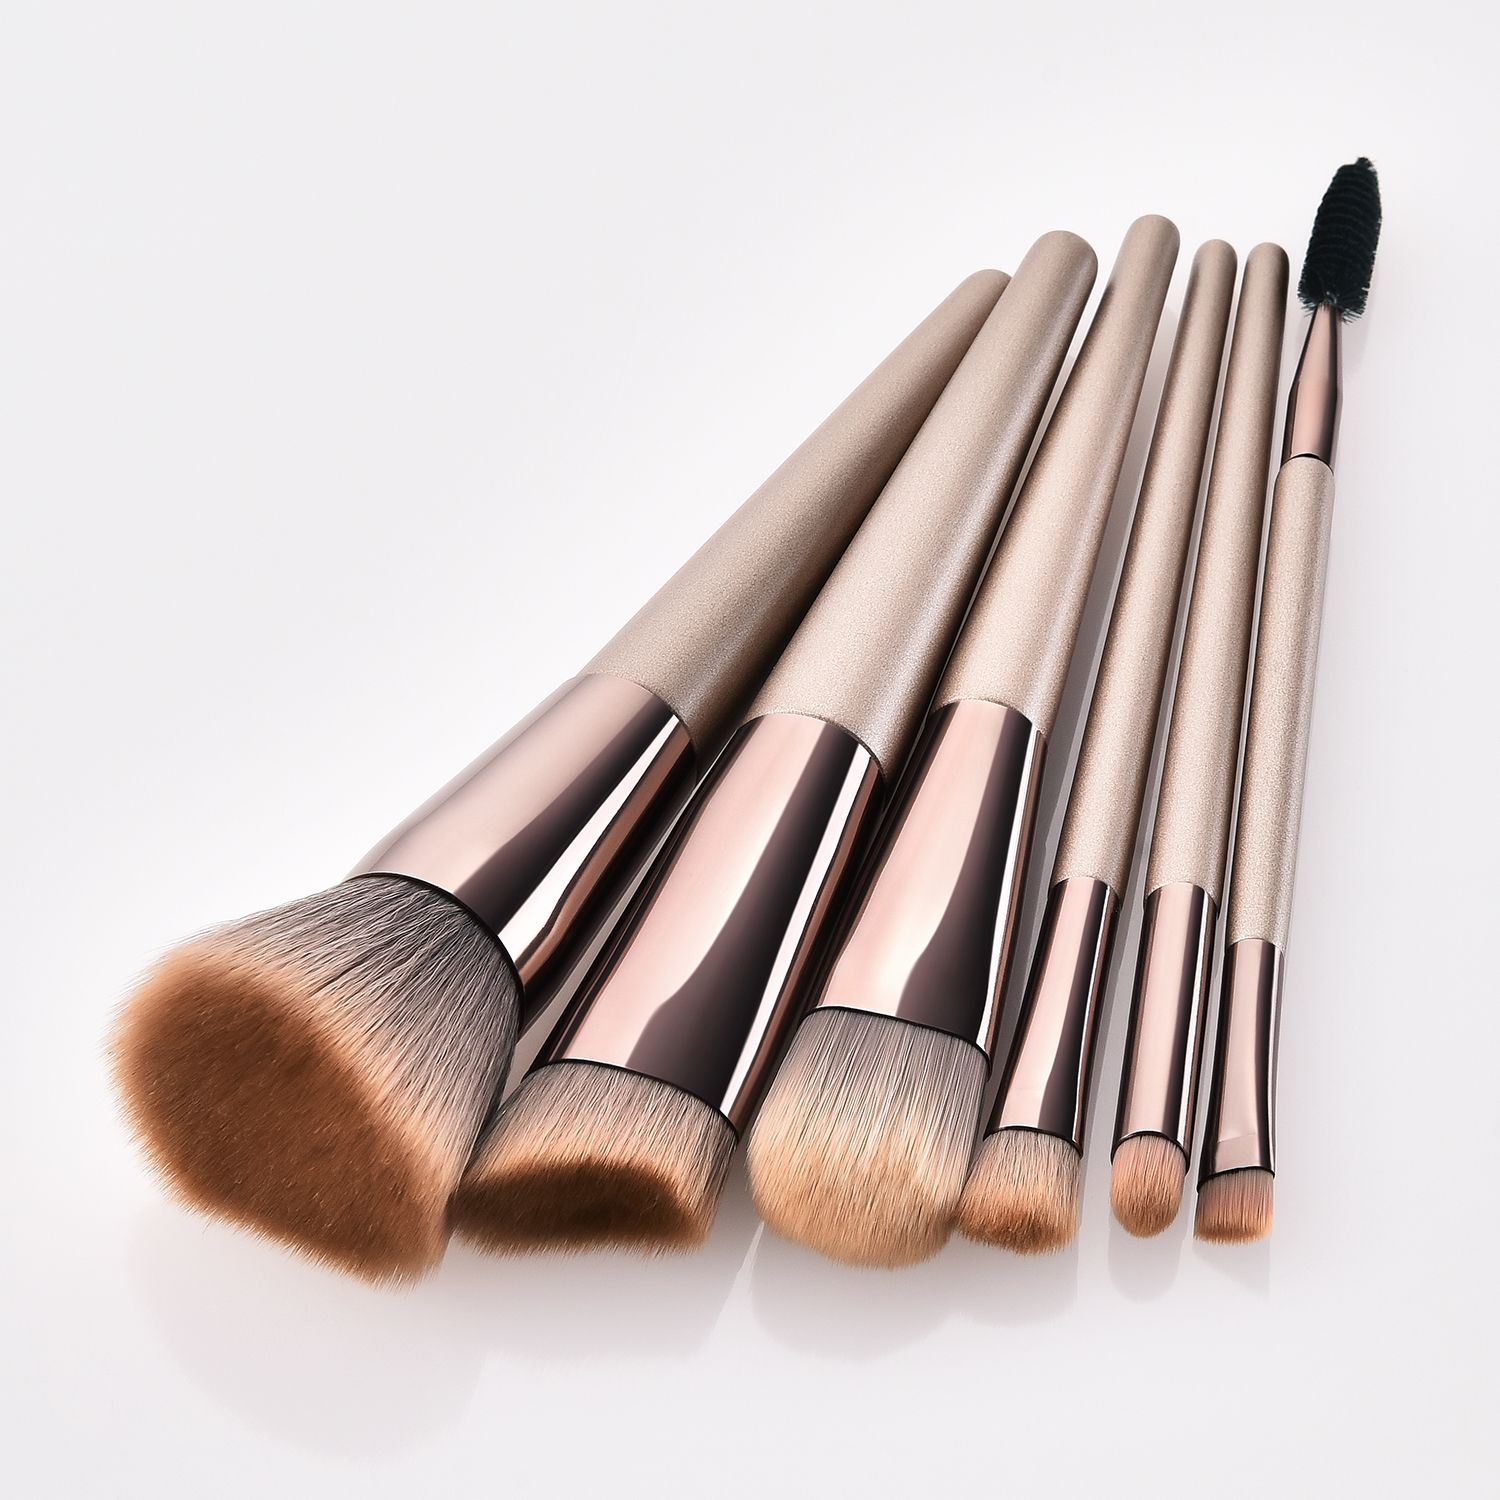 Travel makeup brushes set available wholesale inquiry